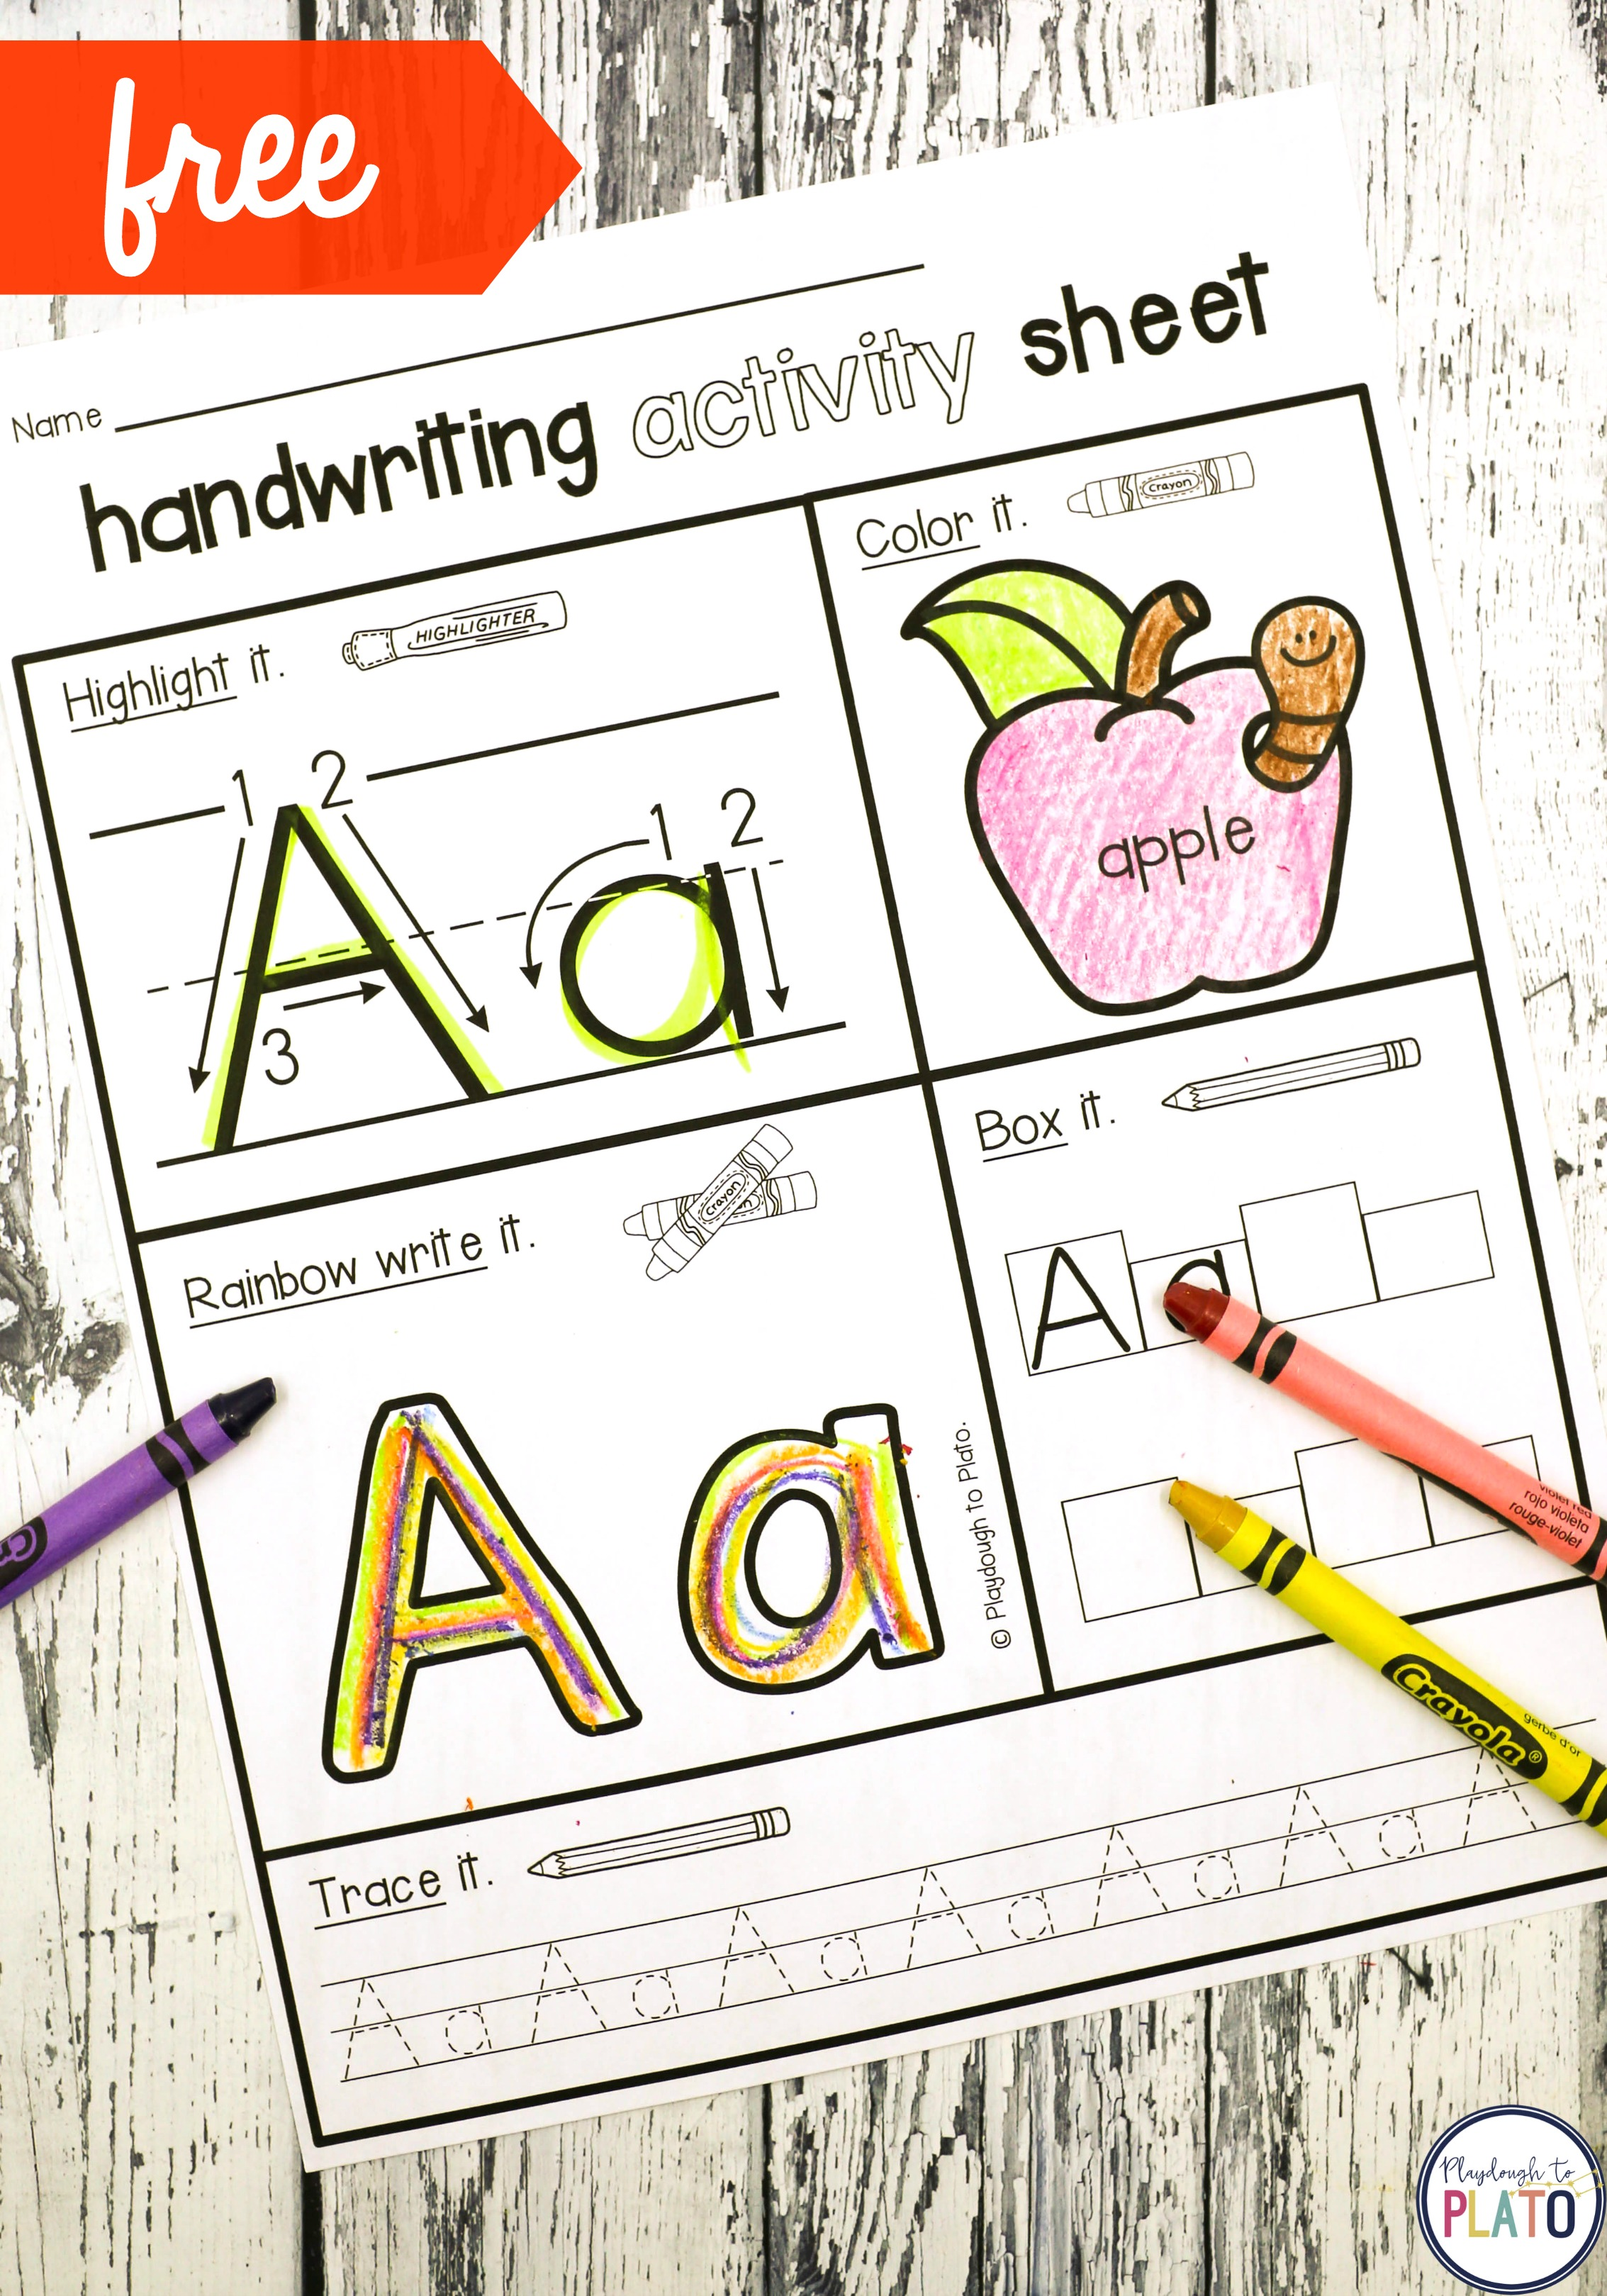 Handwriting Activity Pages - Playdough To Plato